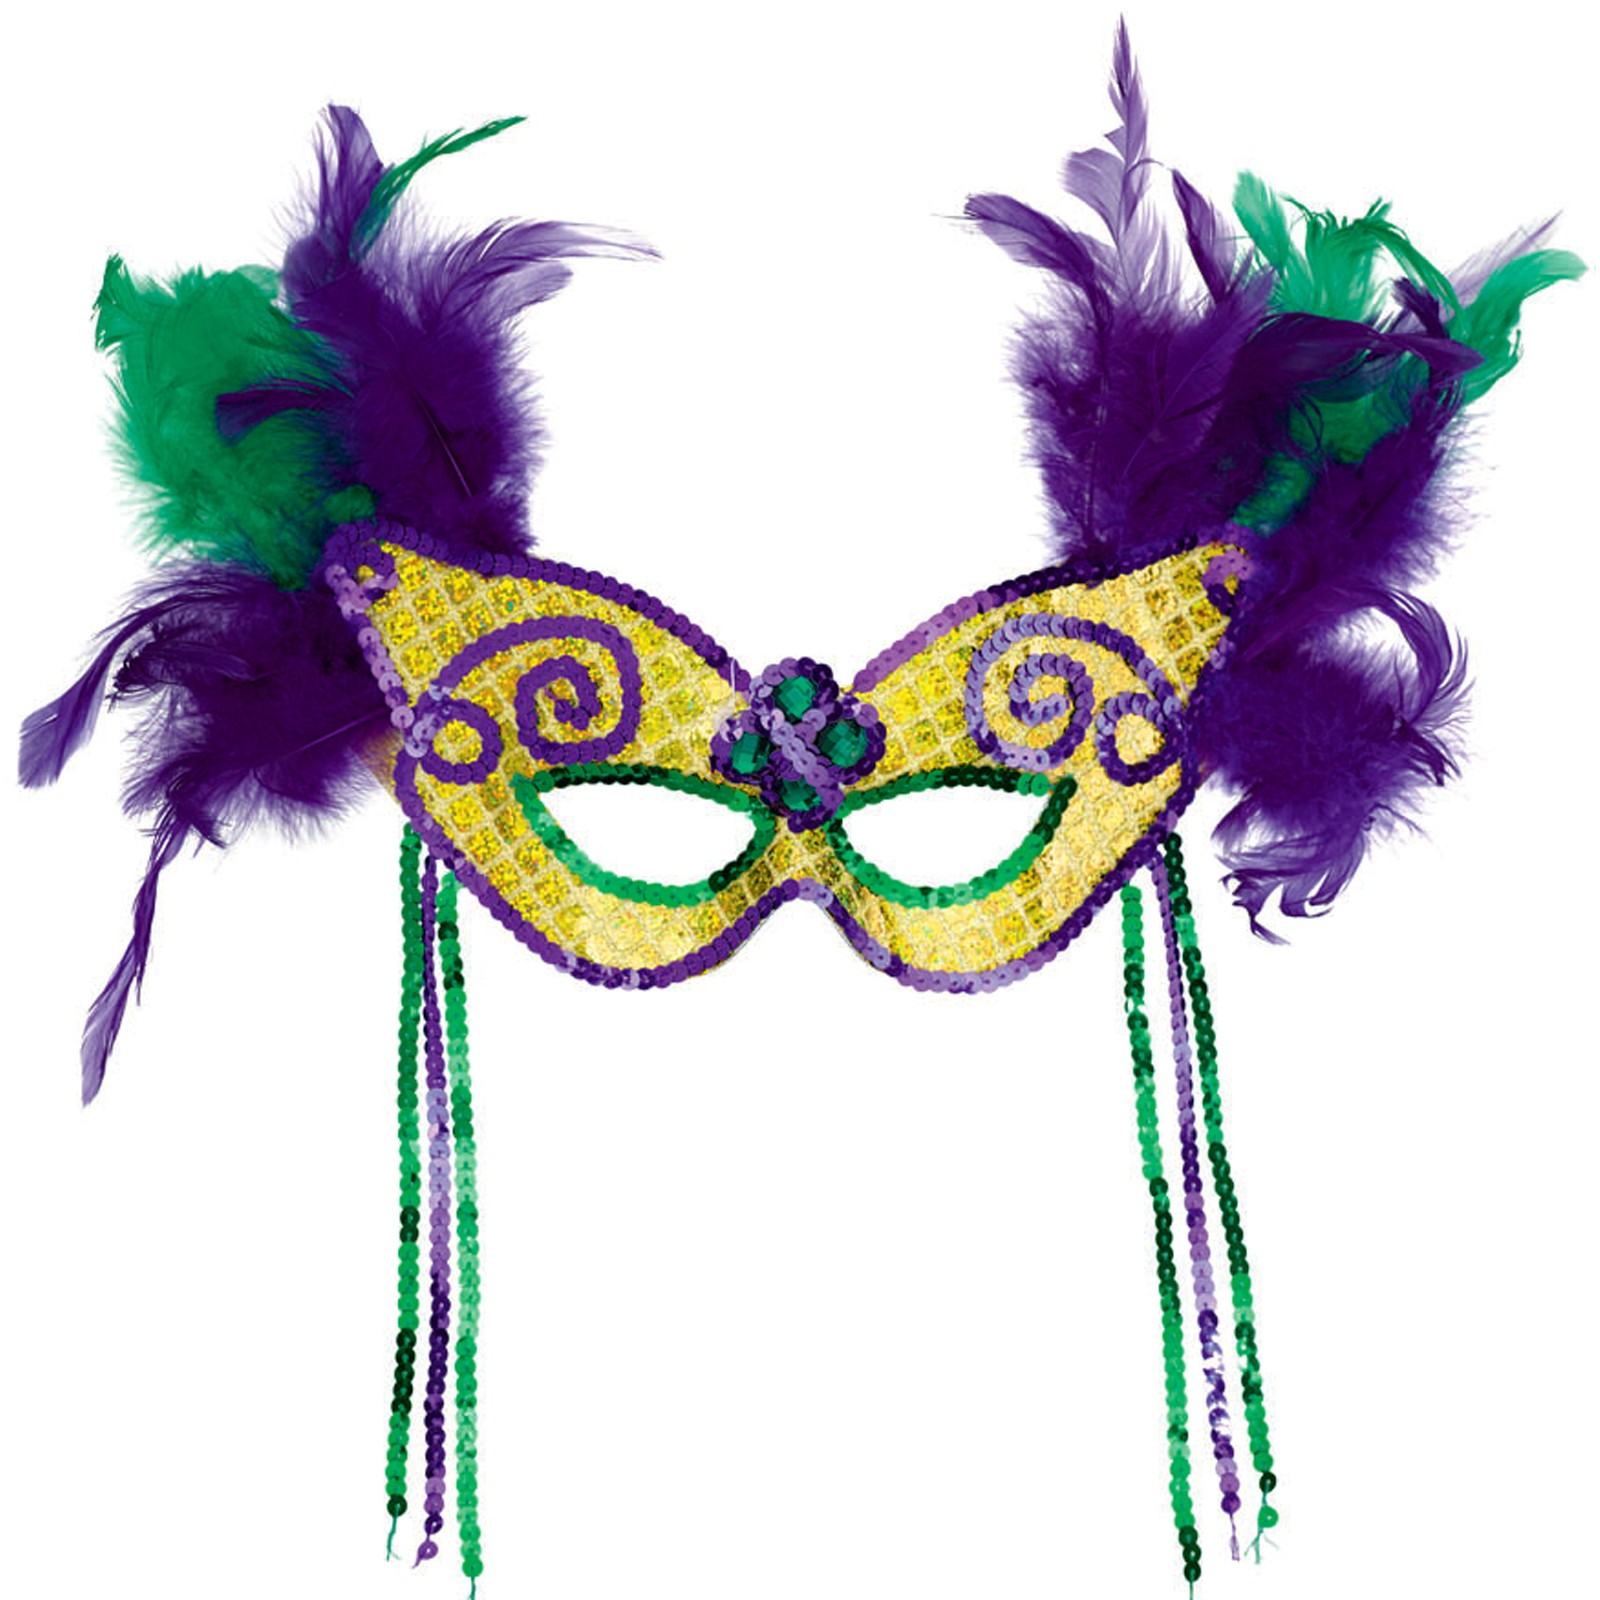 Mardi Gras Mask Images - Cliparts.co